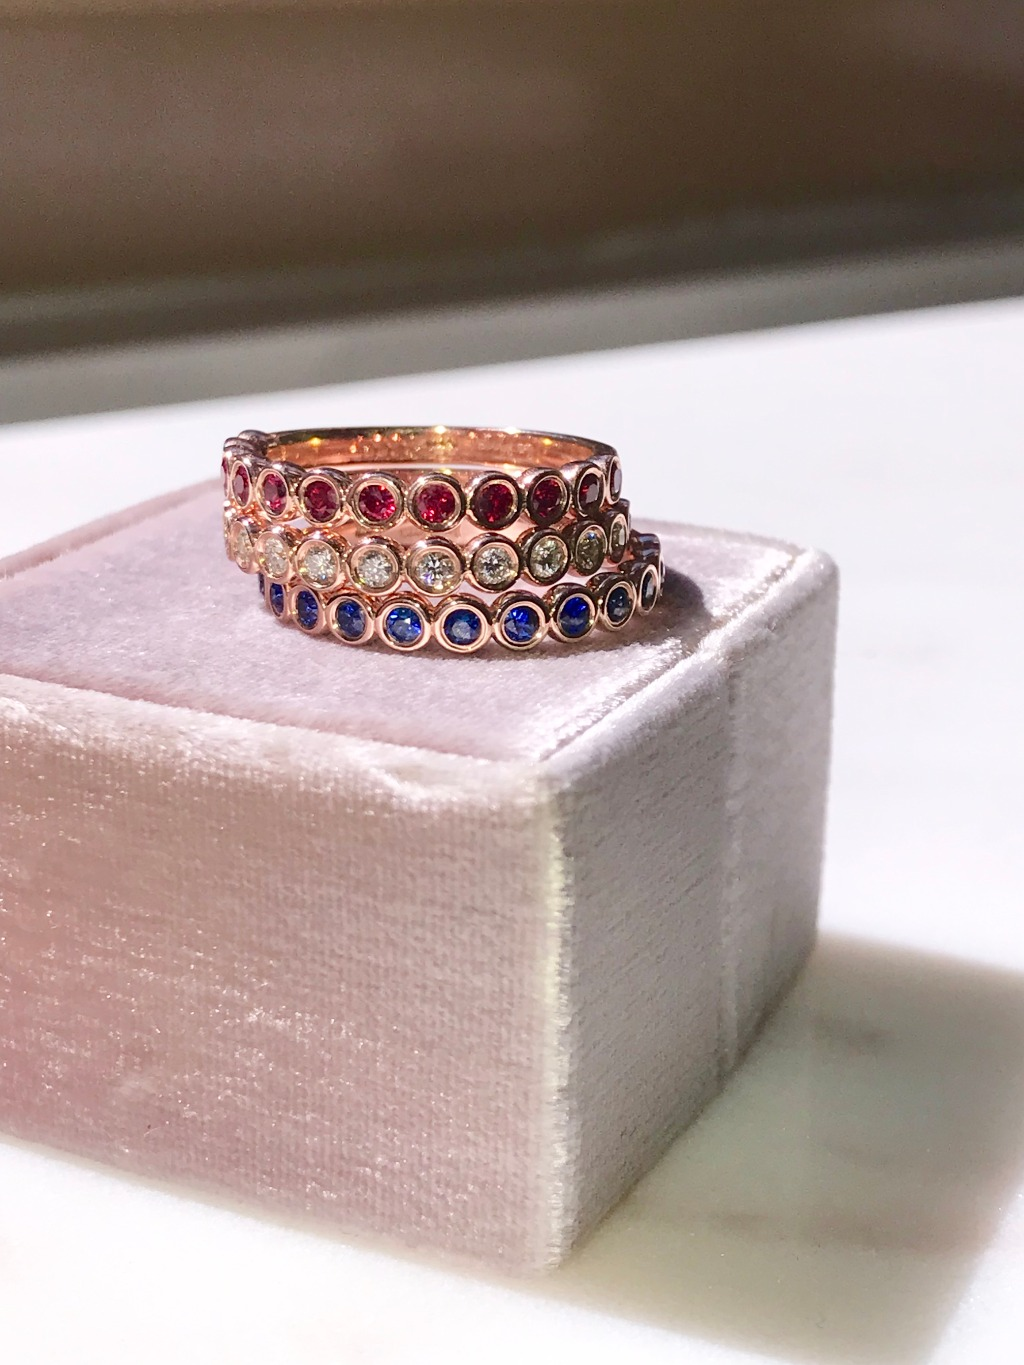 Rubies and diamonds and sapphires, oh my! A little something for every bride in this wedding ring stack of ruby, diamond, and royal